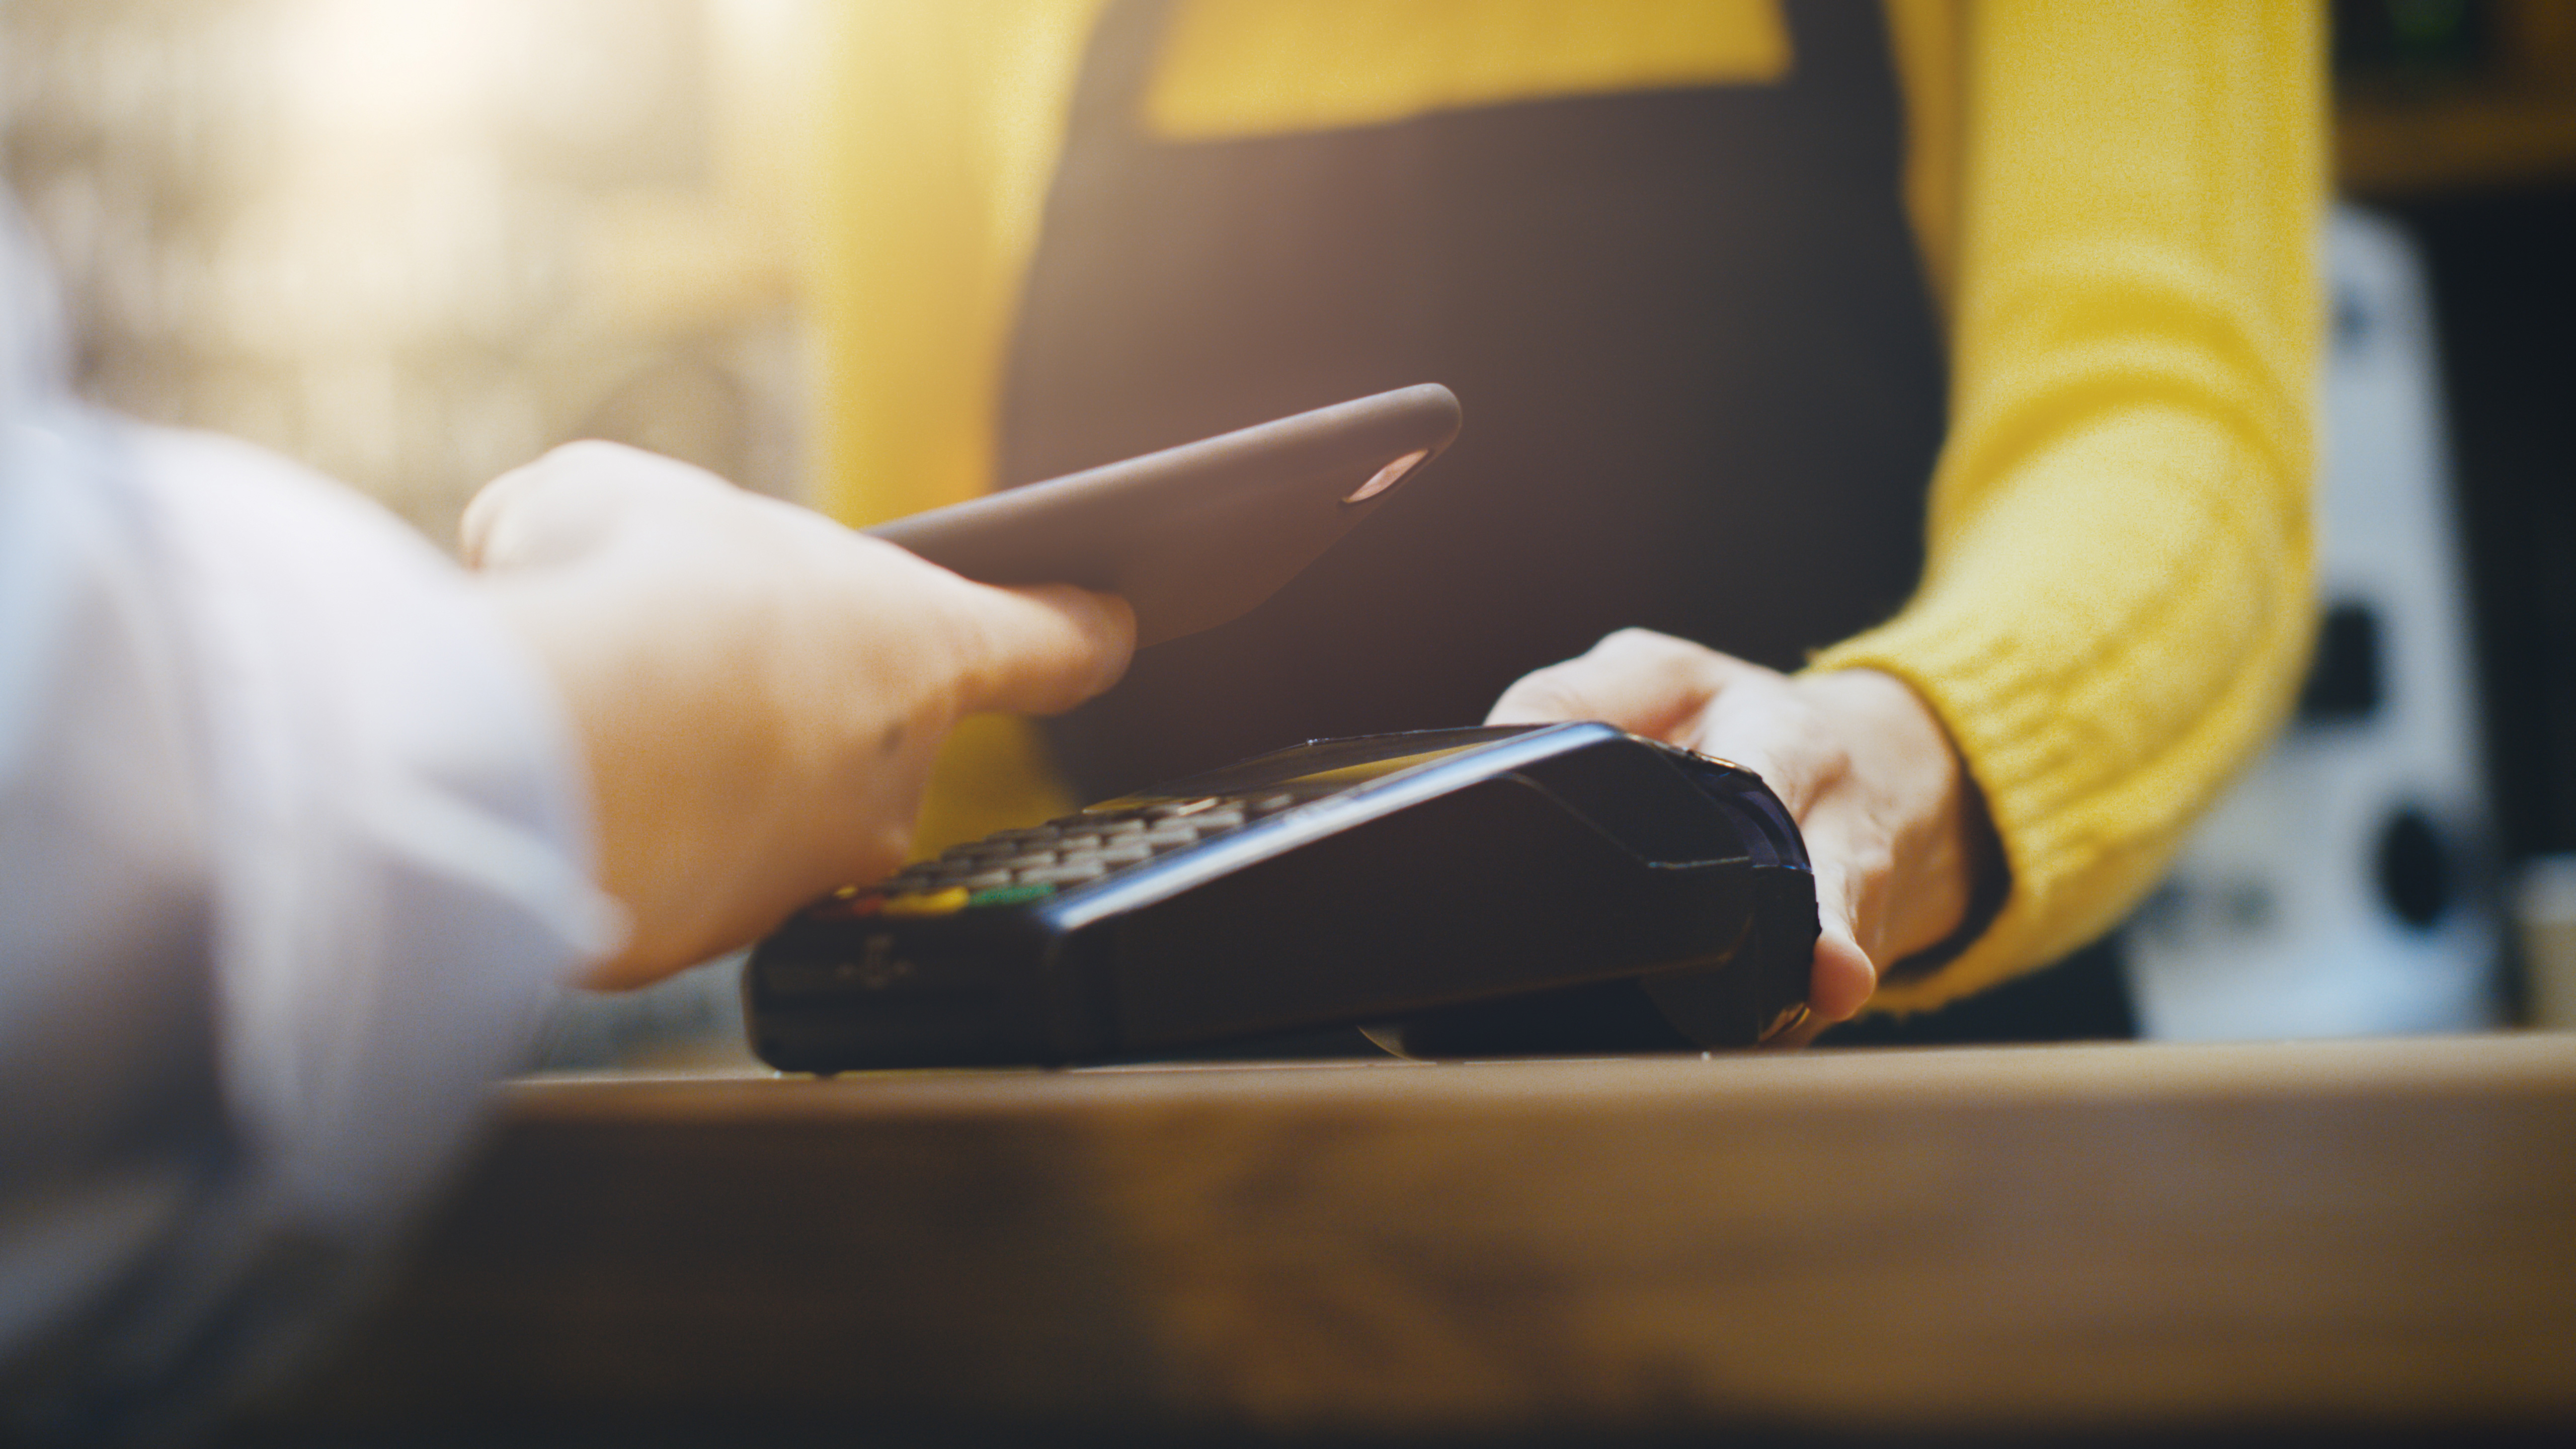 using smartphone to pay at retailer